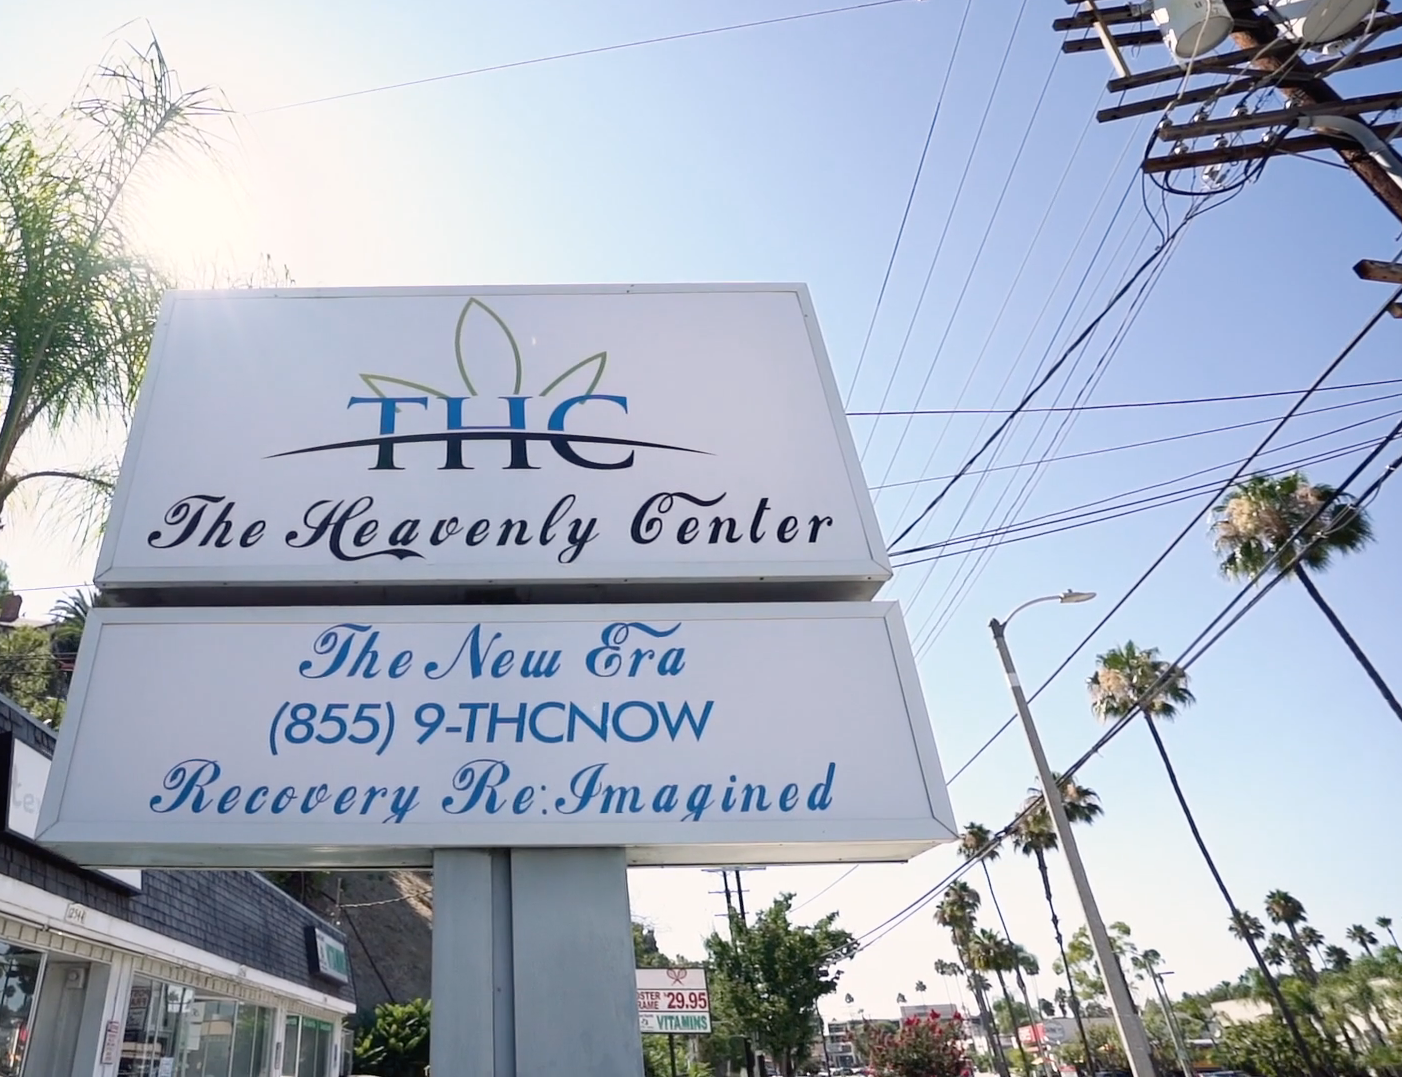 The Heavenly Center